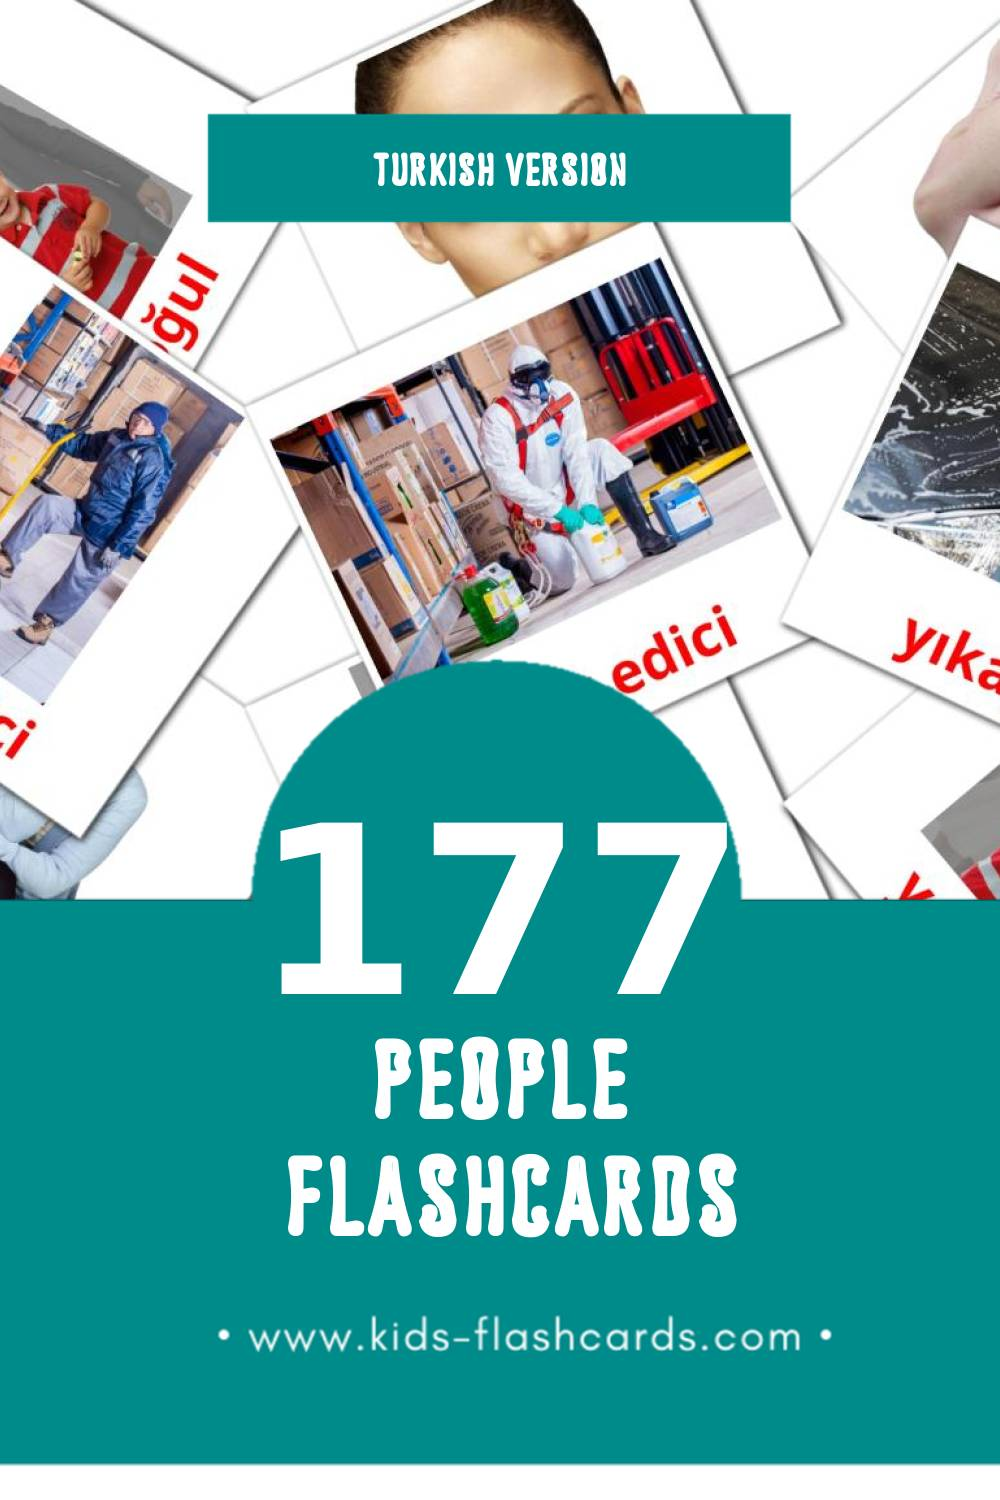 Visual İnsan Flashcards for Toddlers (58 cards in Turkish)